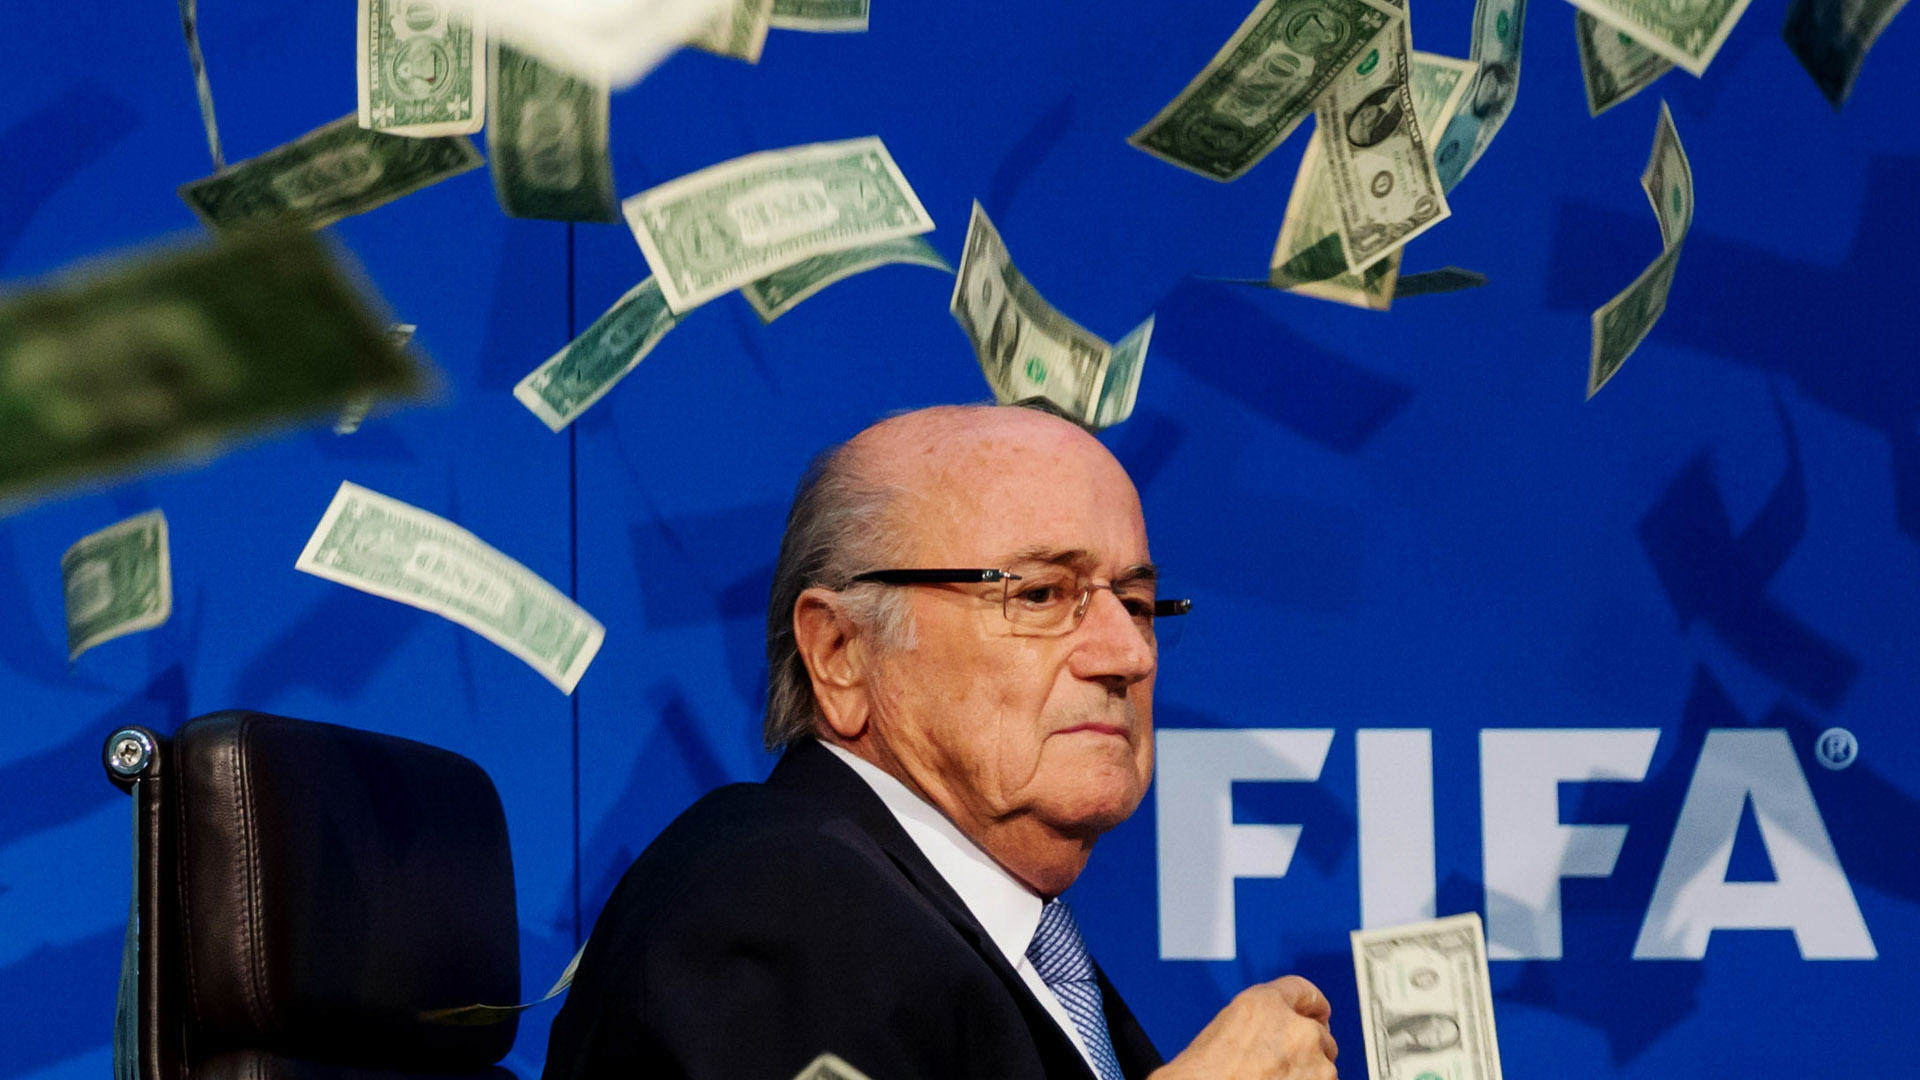 sepp b The Ten Biggest C*nts In Football During 2015